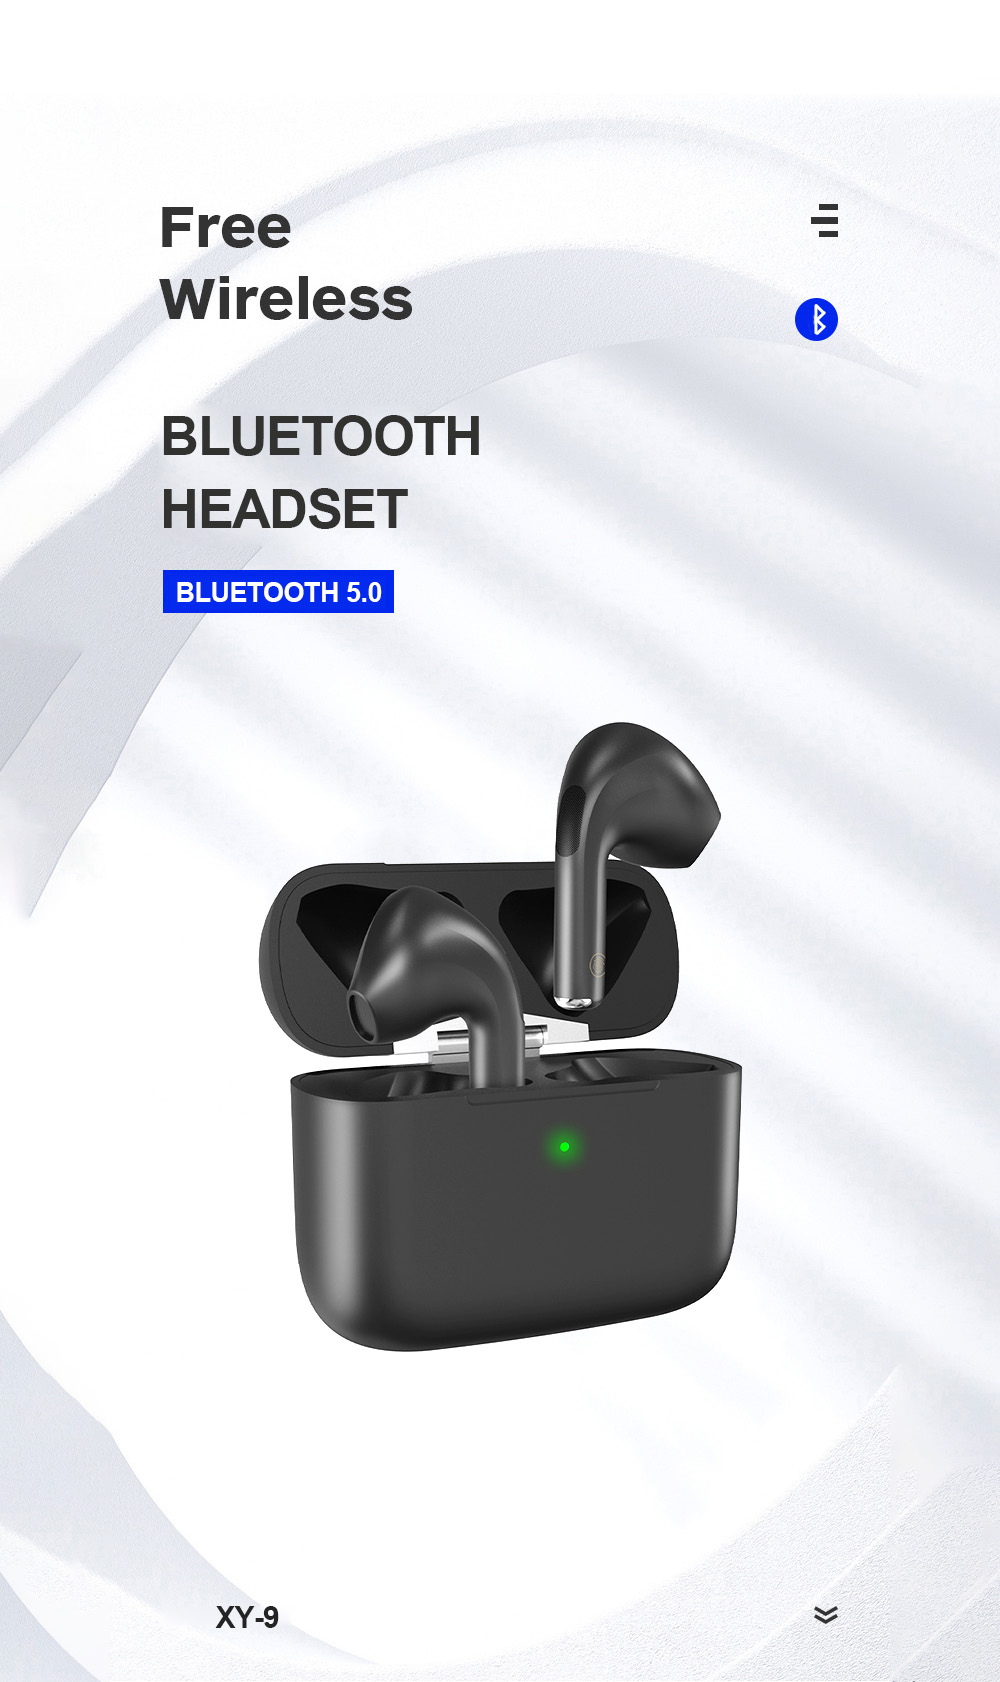 XY-9 Wireless Bluetooth Headphone - Black